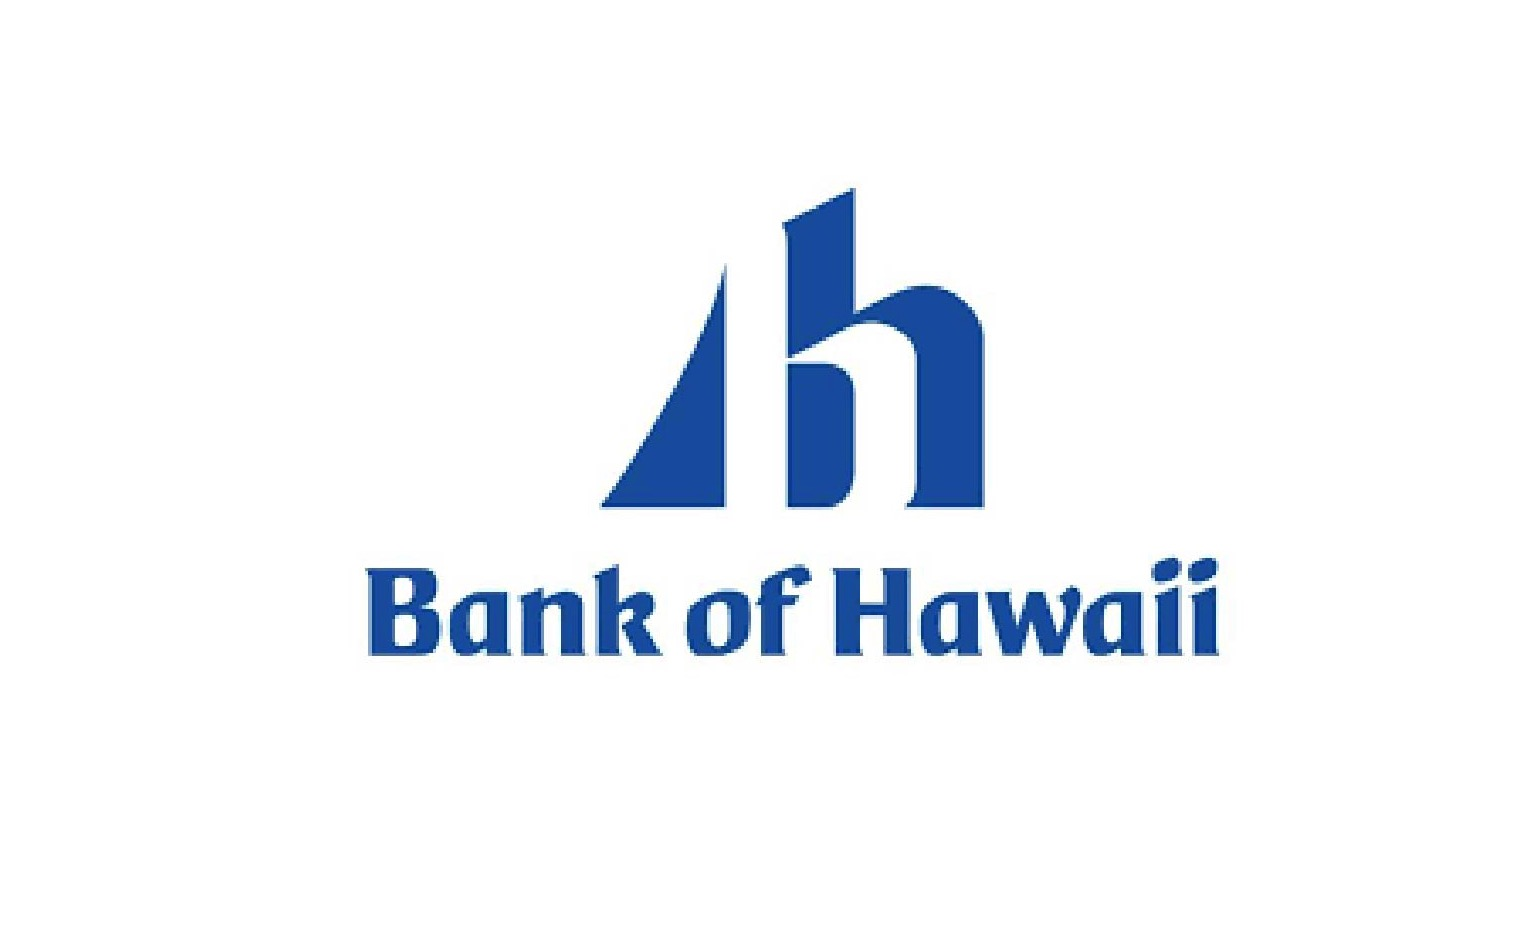 Peter S. Ho - Chairman, President and CEOBank of Hawaii